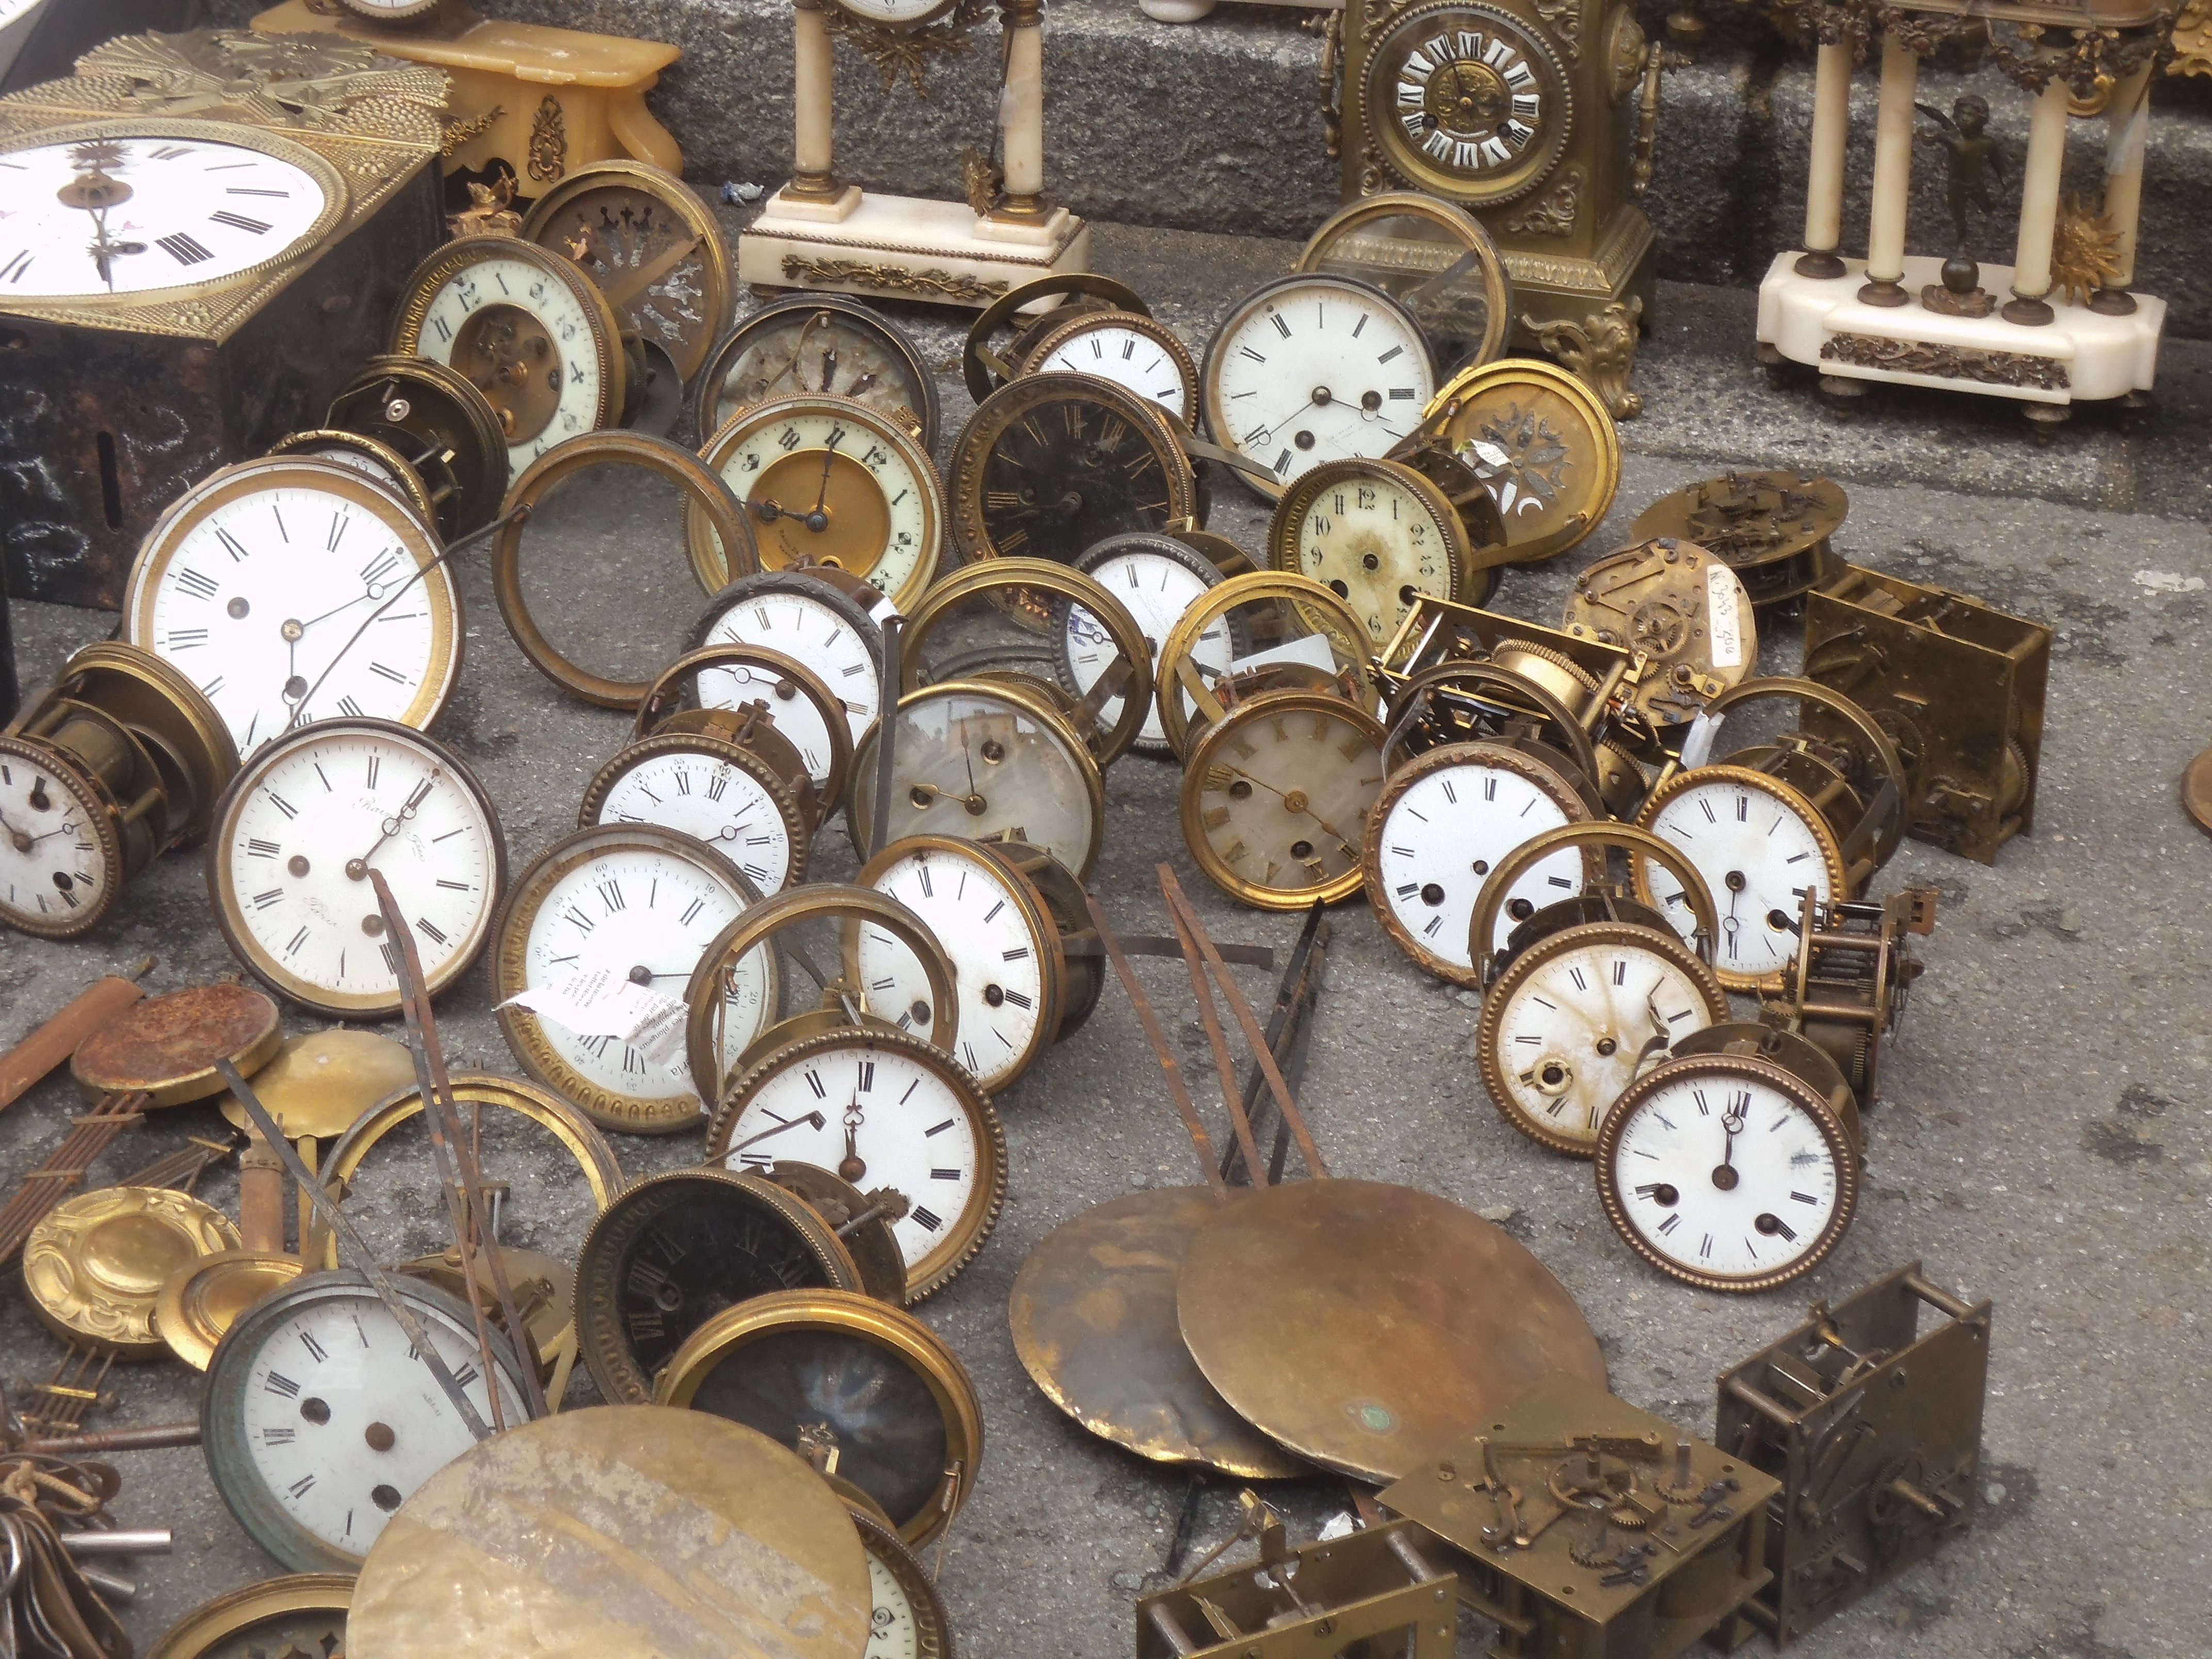 The Flea Market At Belfort Vieux Quartier In The Northeast Of France